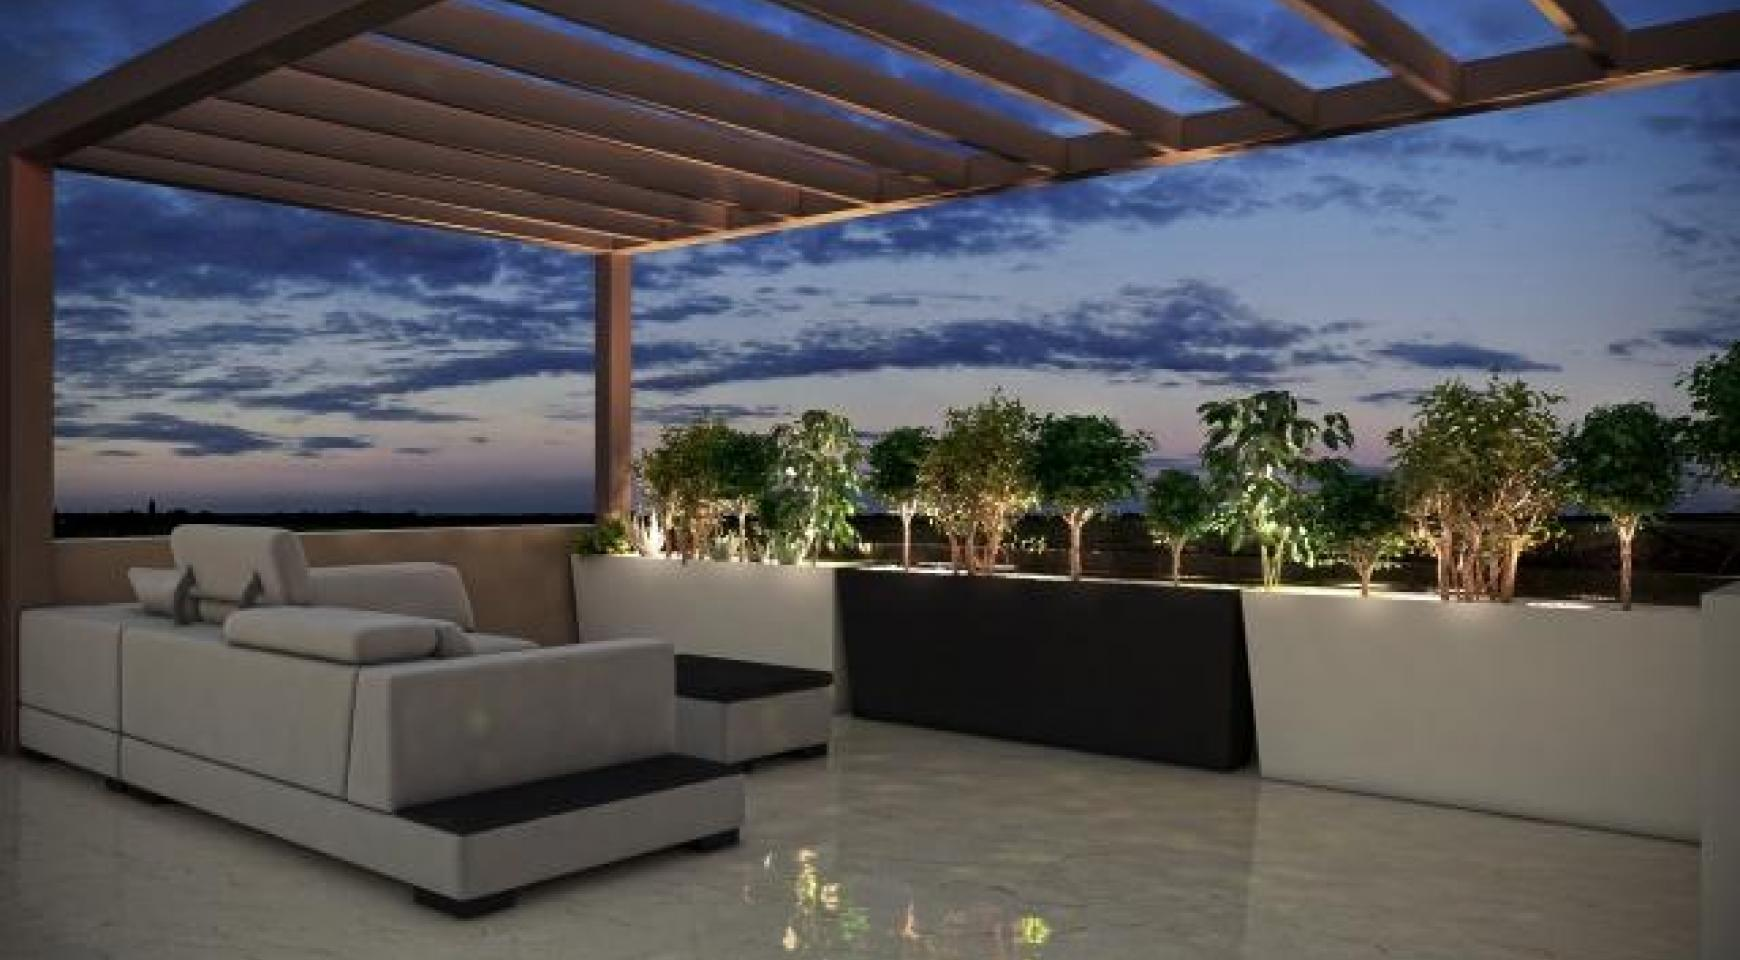 New Contemporary 3 Bedroom House in Central Location - 4